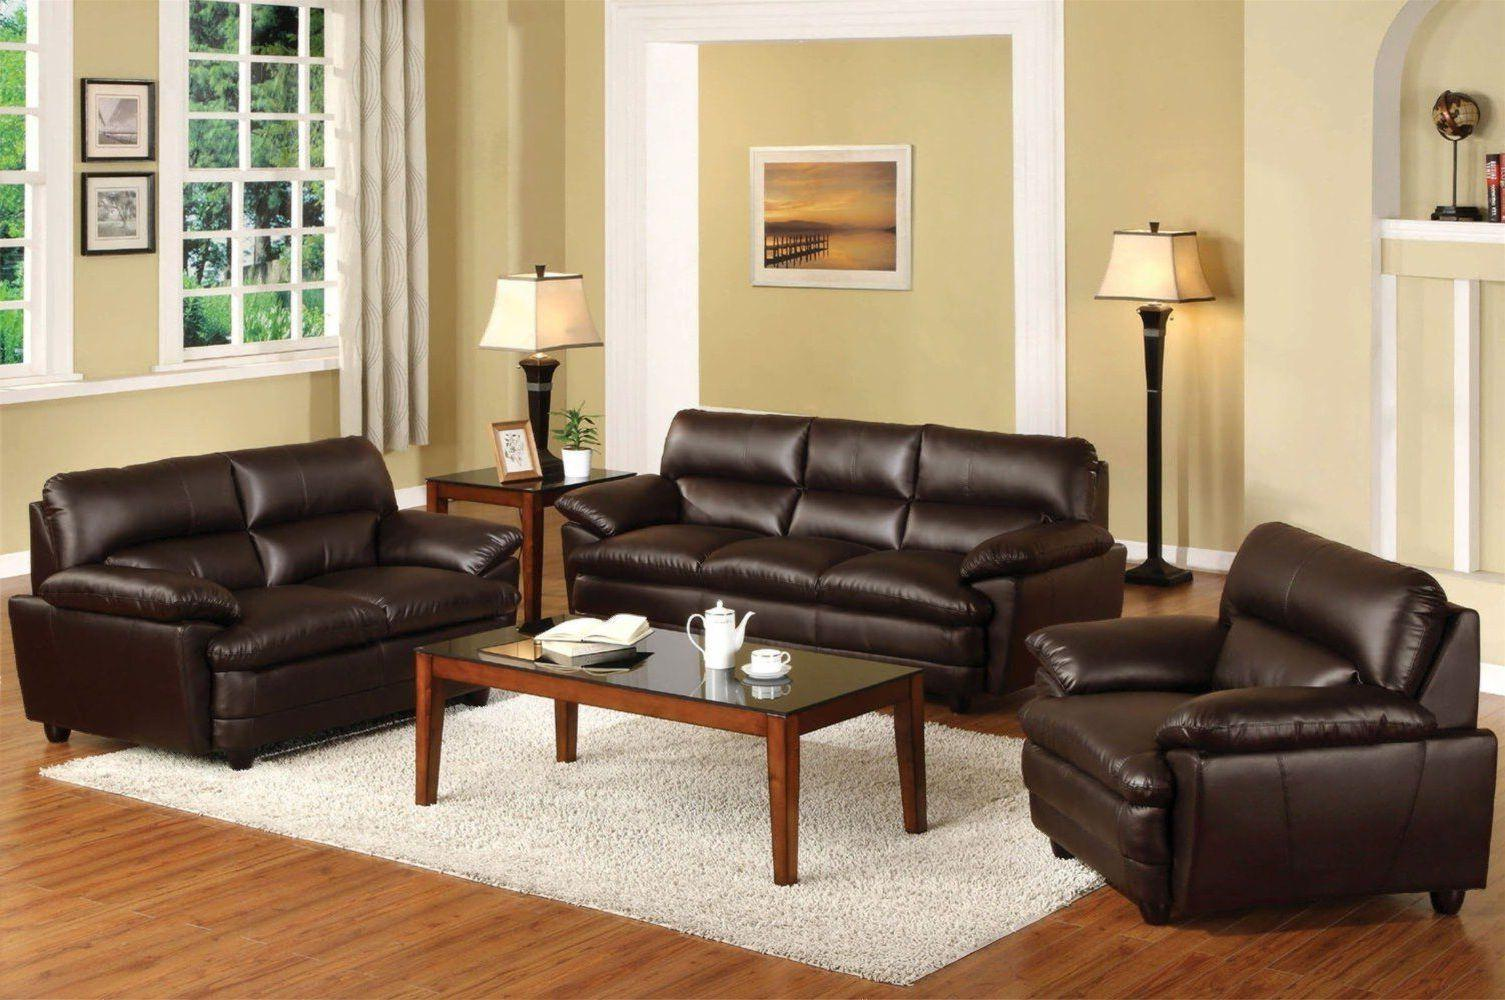 Image of: Light Brown Living Room Set